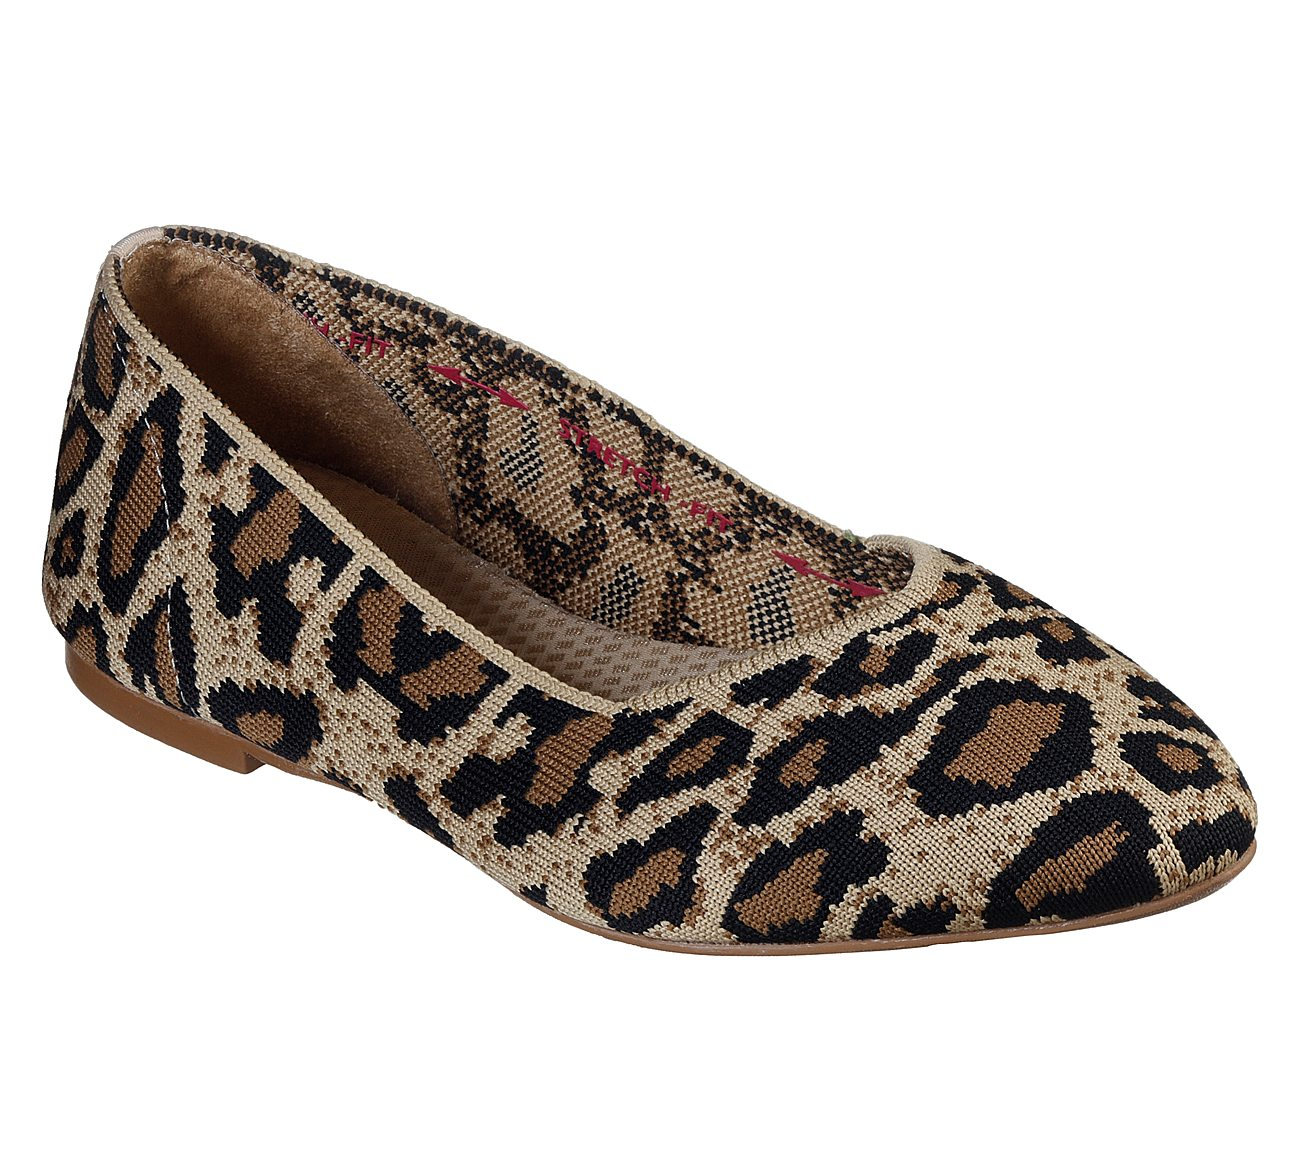 Buy SKECHERS Cleo - Claw-Some Ballet